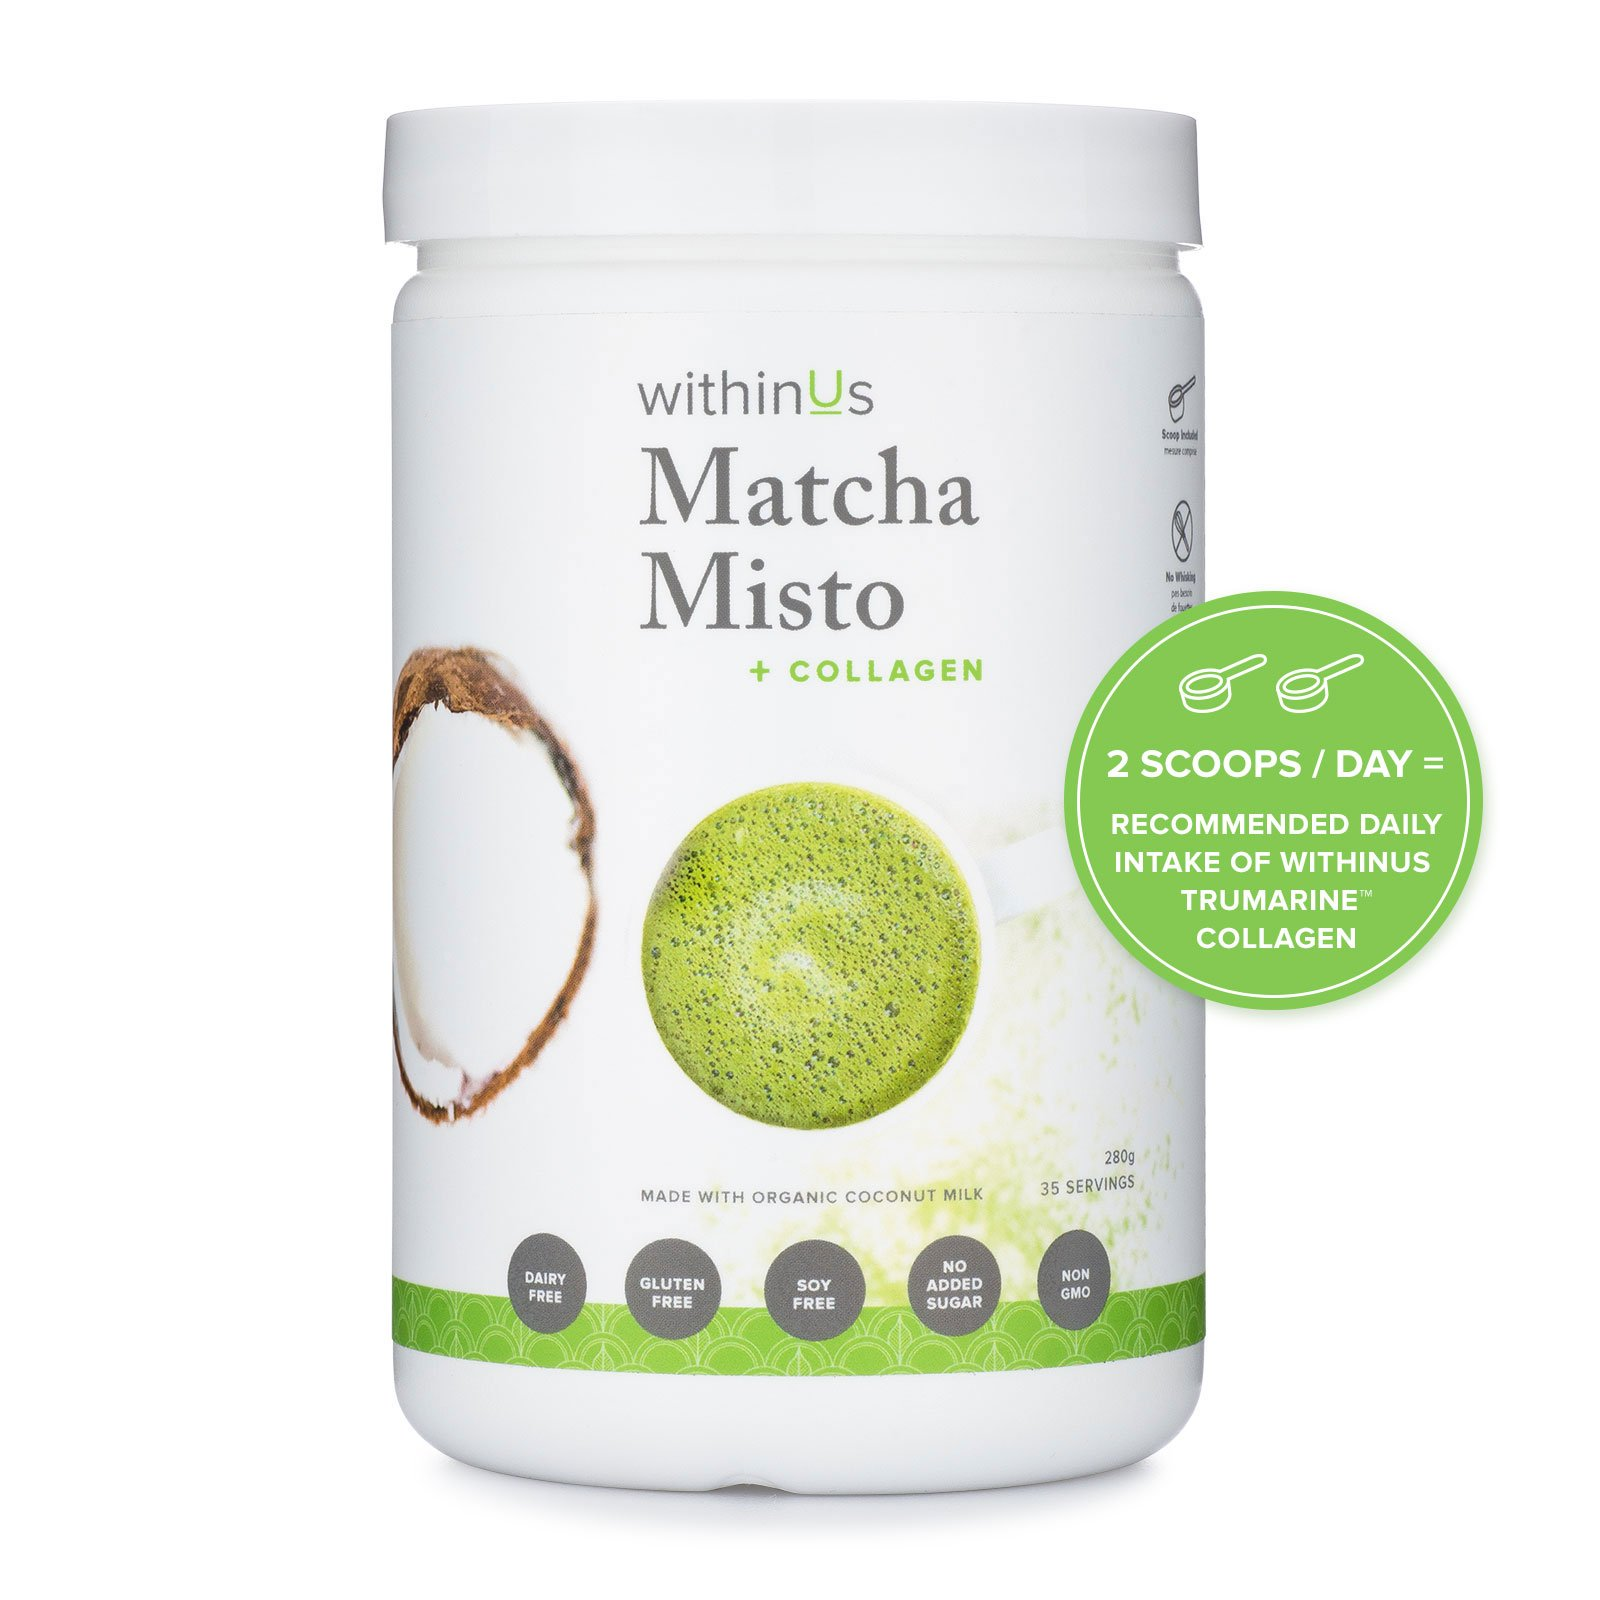 matcha-misto-280g-callout-2-scoops